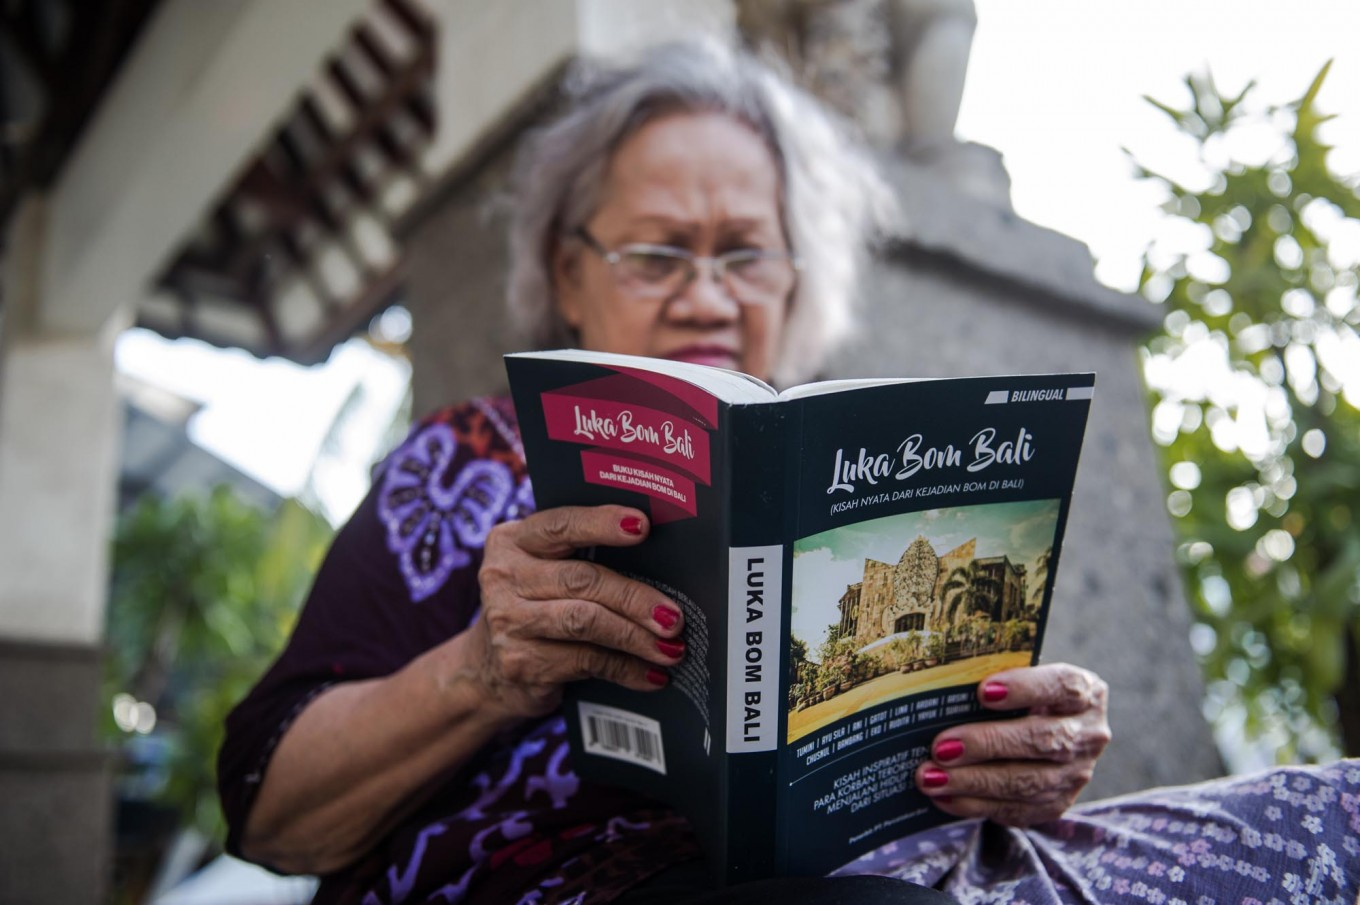 A woman reads Luka Bom Bali, which was released by the Isana Dewata Foundation on Oct. 12, 2017. The book was co-written by Ni Komang Erviani and Anak Agung Lea and tells the stories of 15 victims of the 2002 and 2005 Bali bombings. JP/Anggara Mahendra